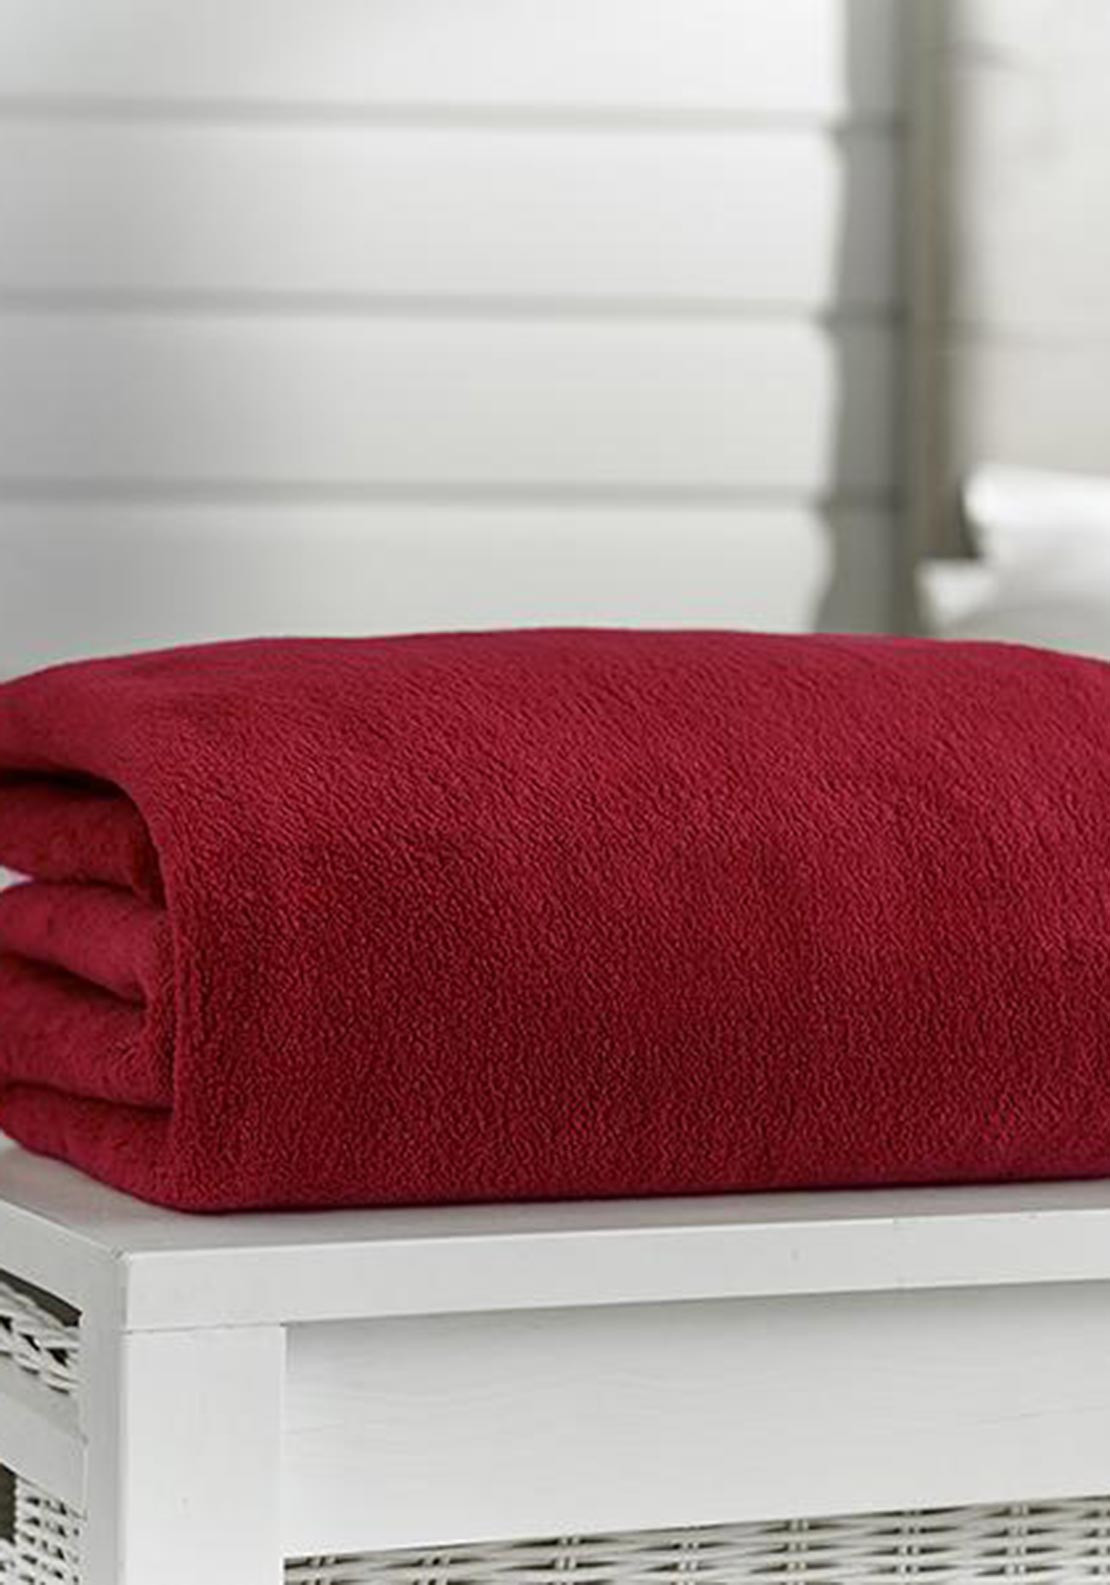 Deyong's Extra Large Snuggle Touch Deluxe Throw, Oxblood